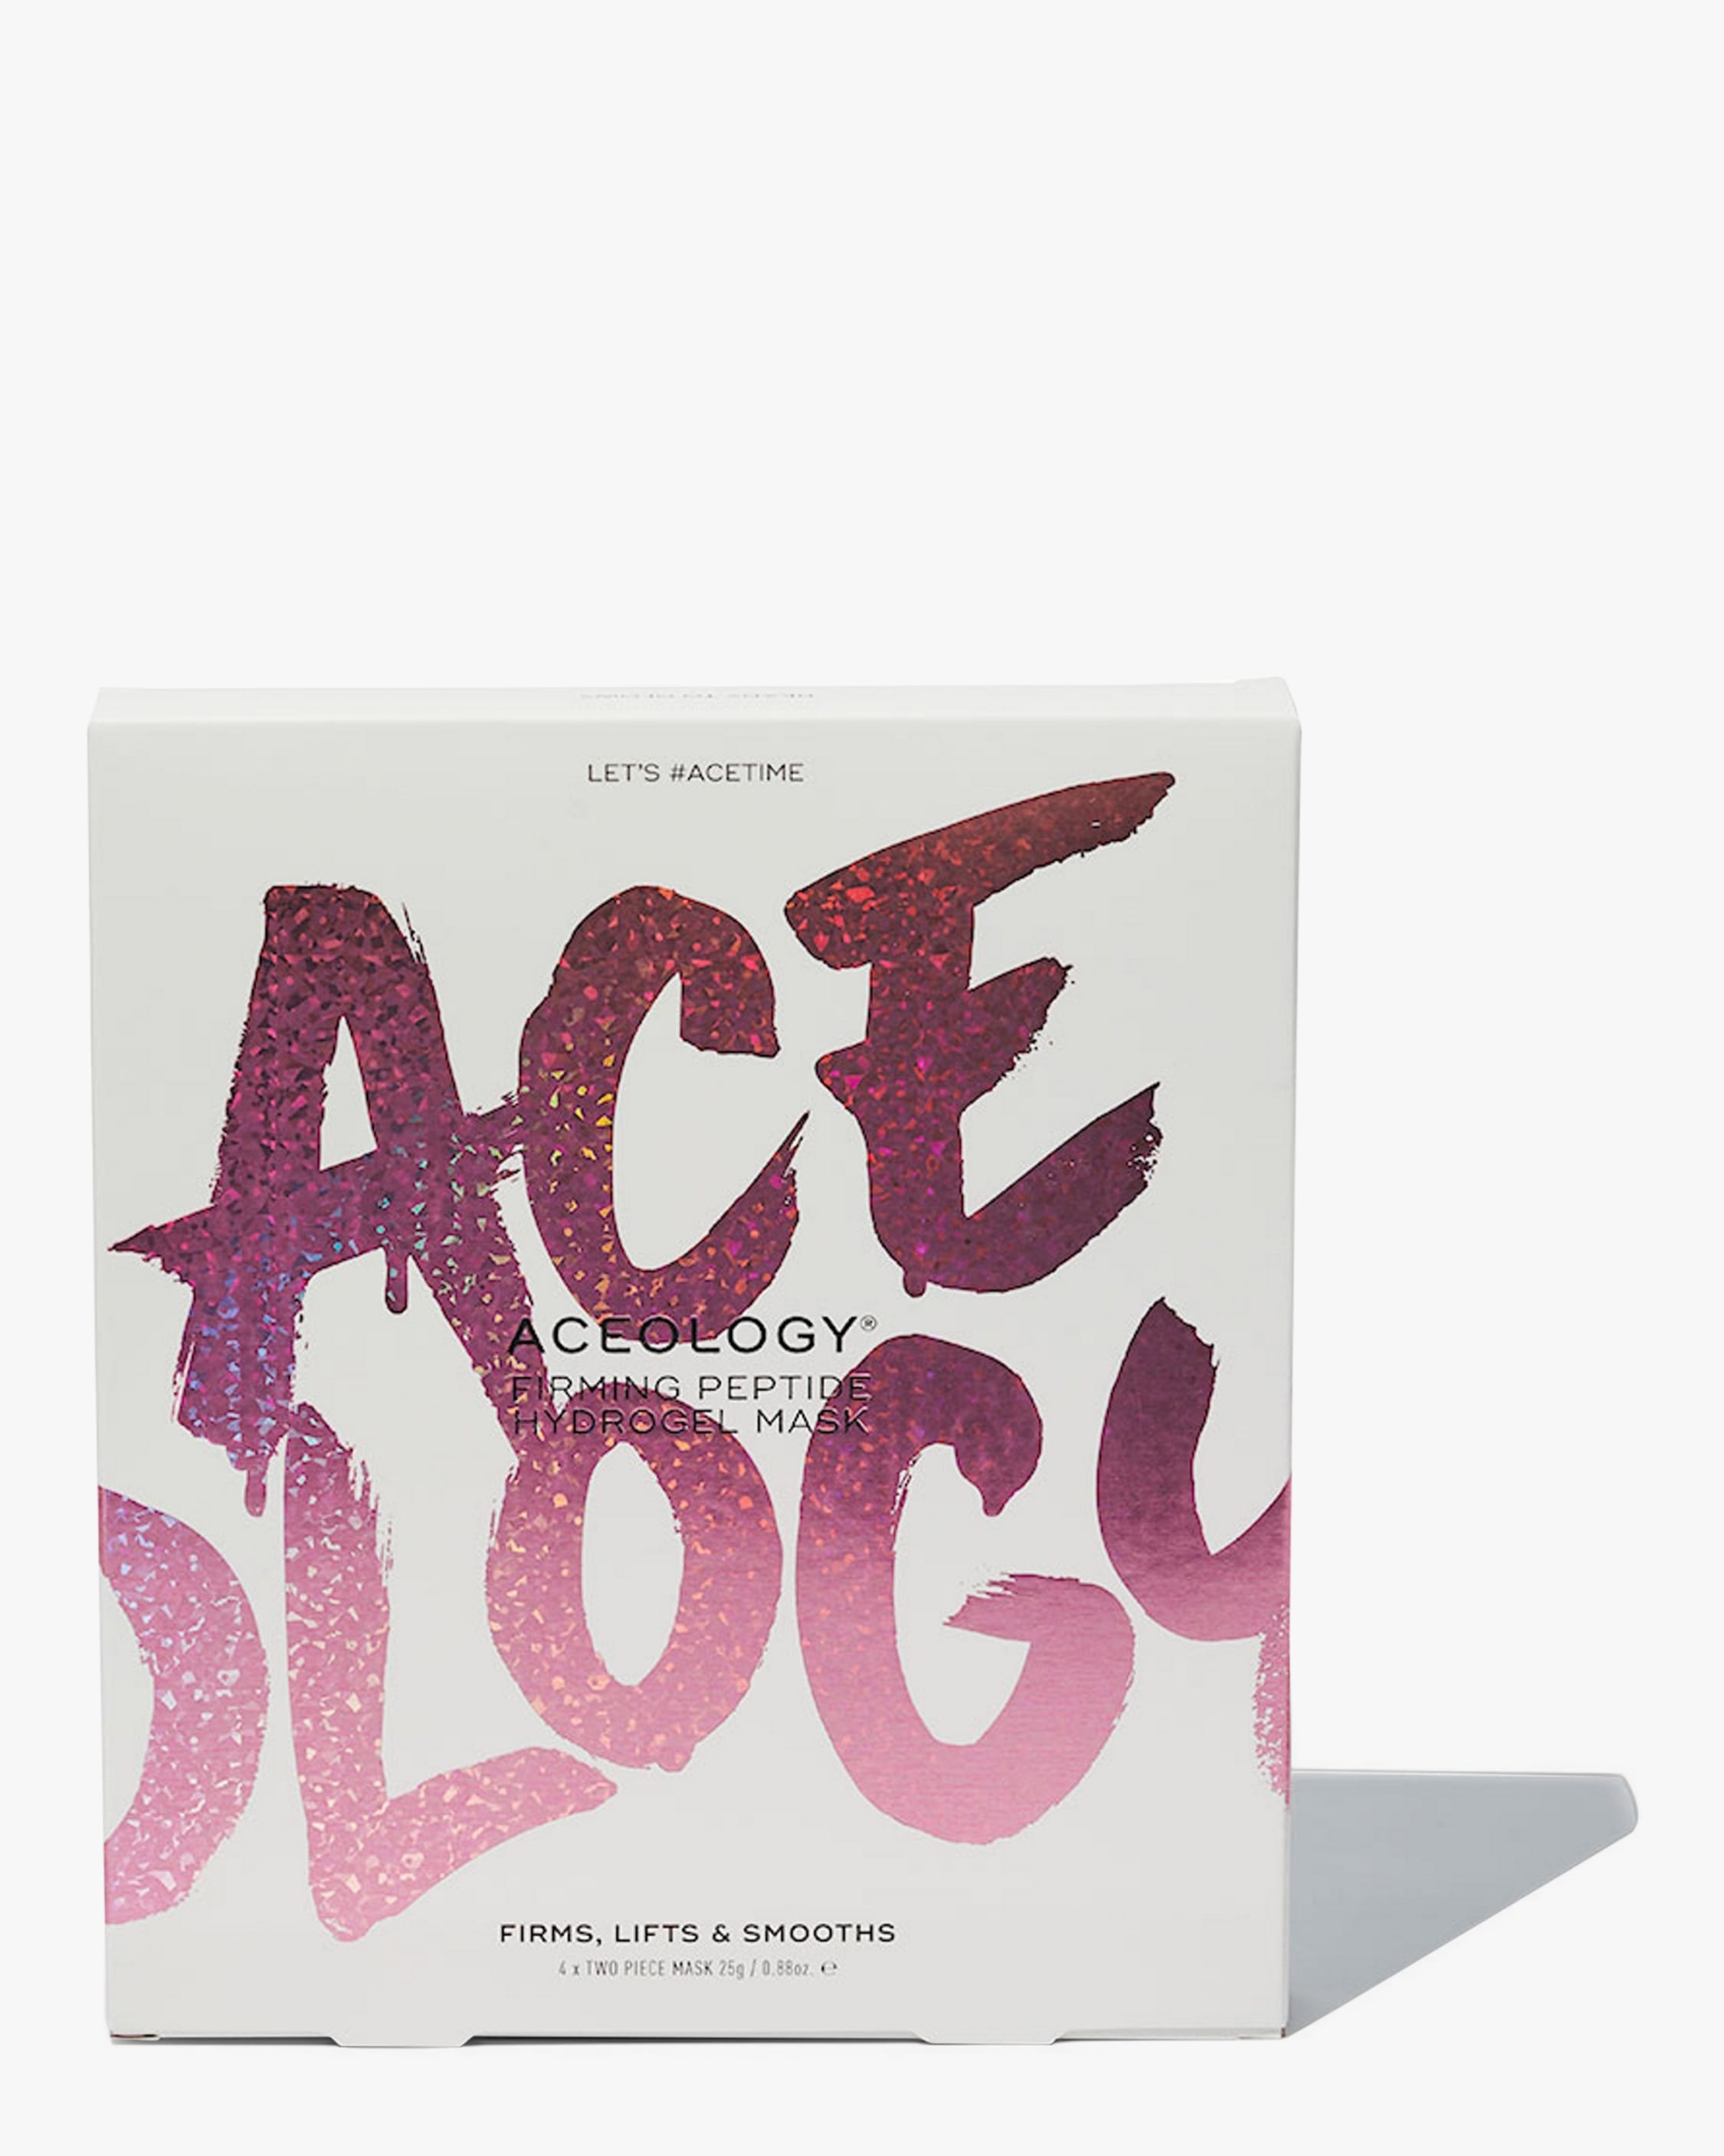 Aceology Firming Peptide Hydrogel Mask 4 pack 1